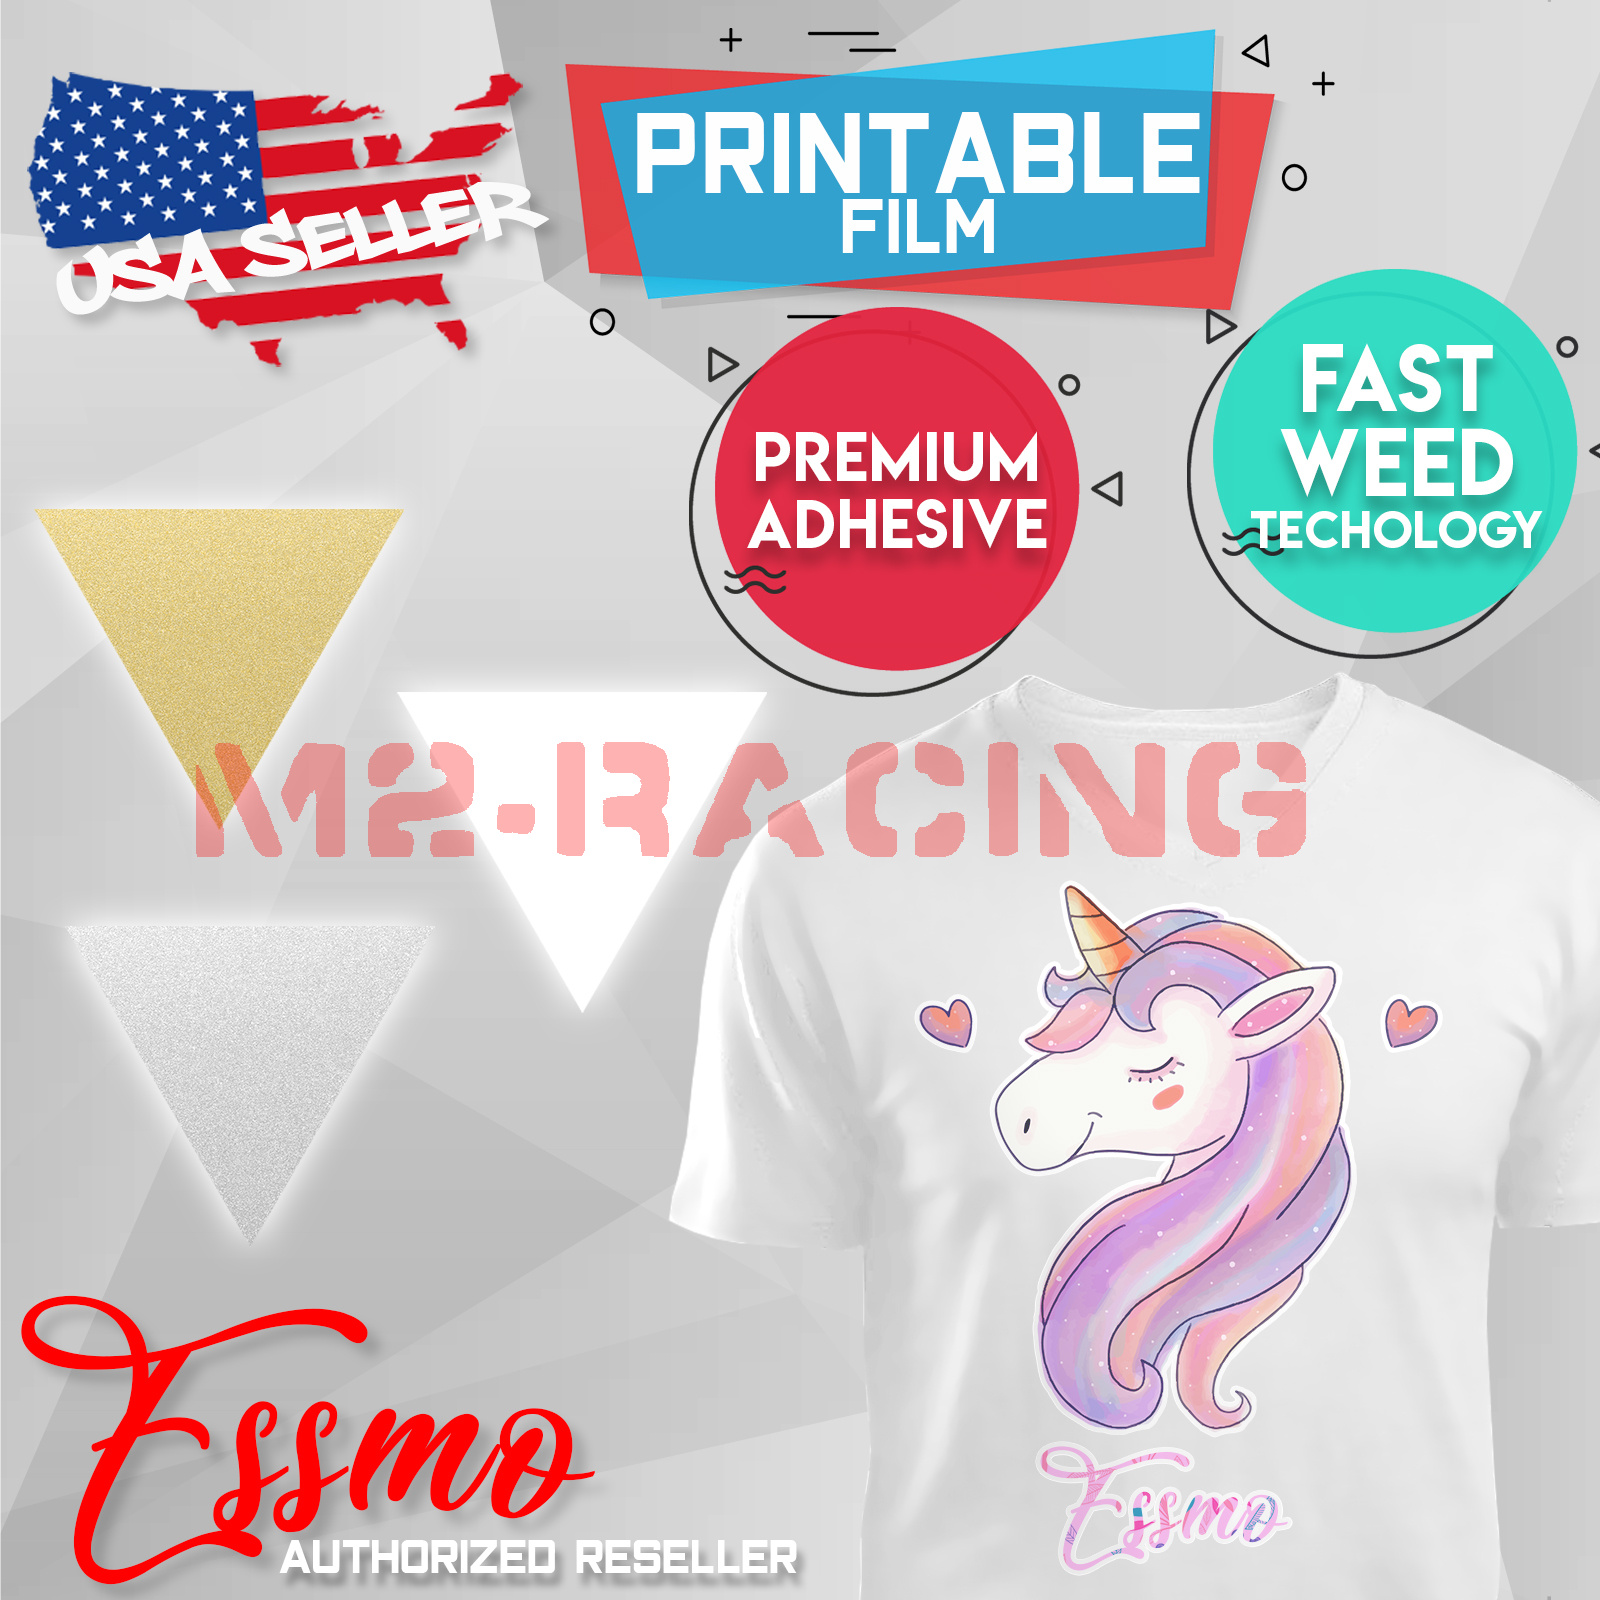 "image about Heat Transfer Printable Vinyl called Data relating to Essmoâ""¢ Printing Warm Shift Vinyl HTV T-Blouse 20\"